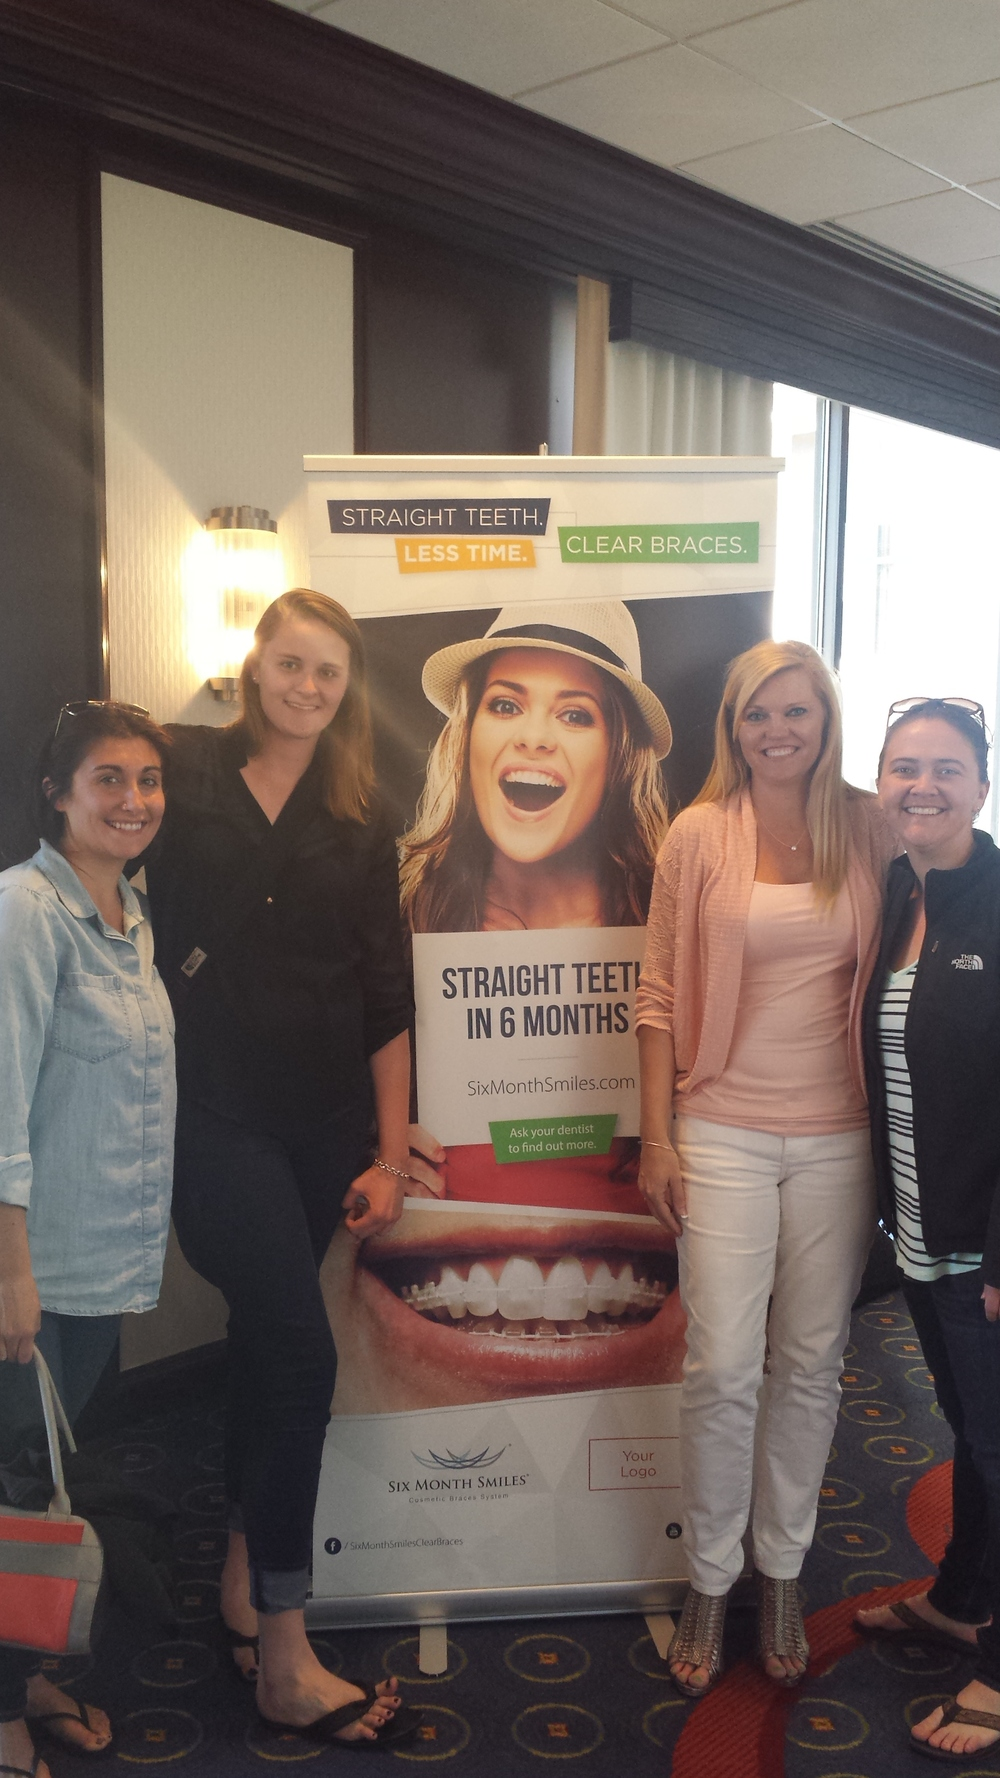 6 Month Smiles CE Course in Atlanta!